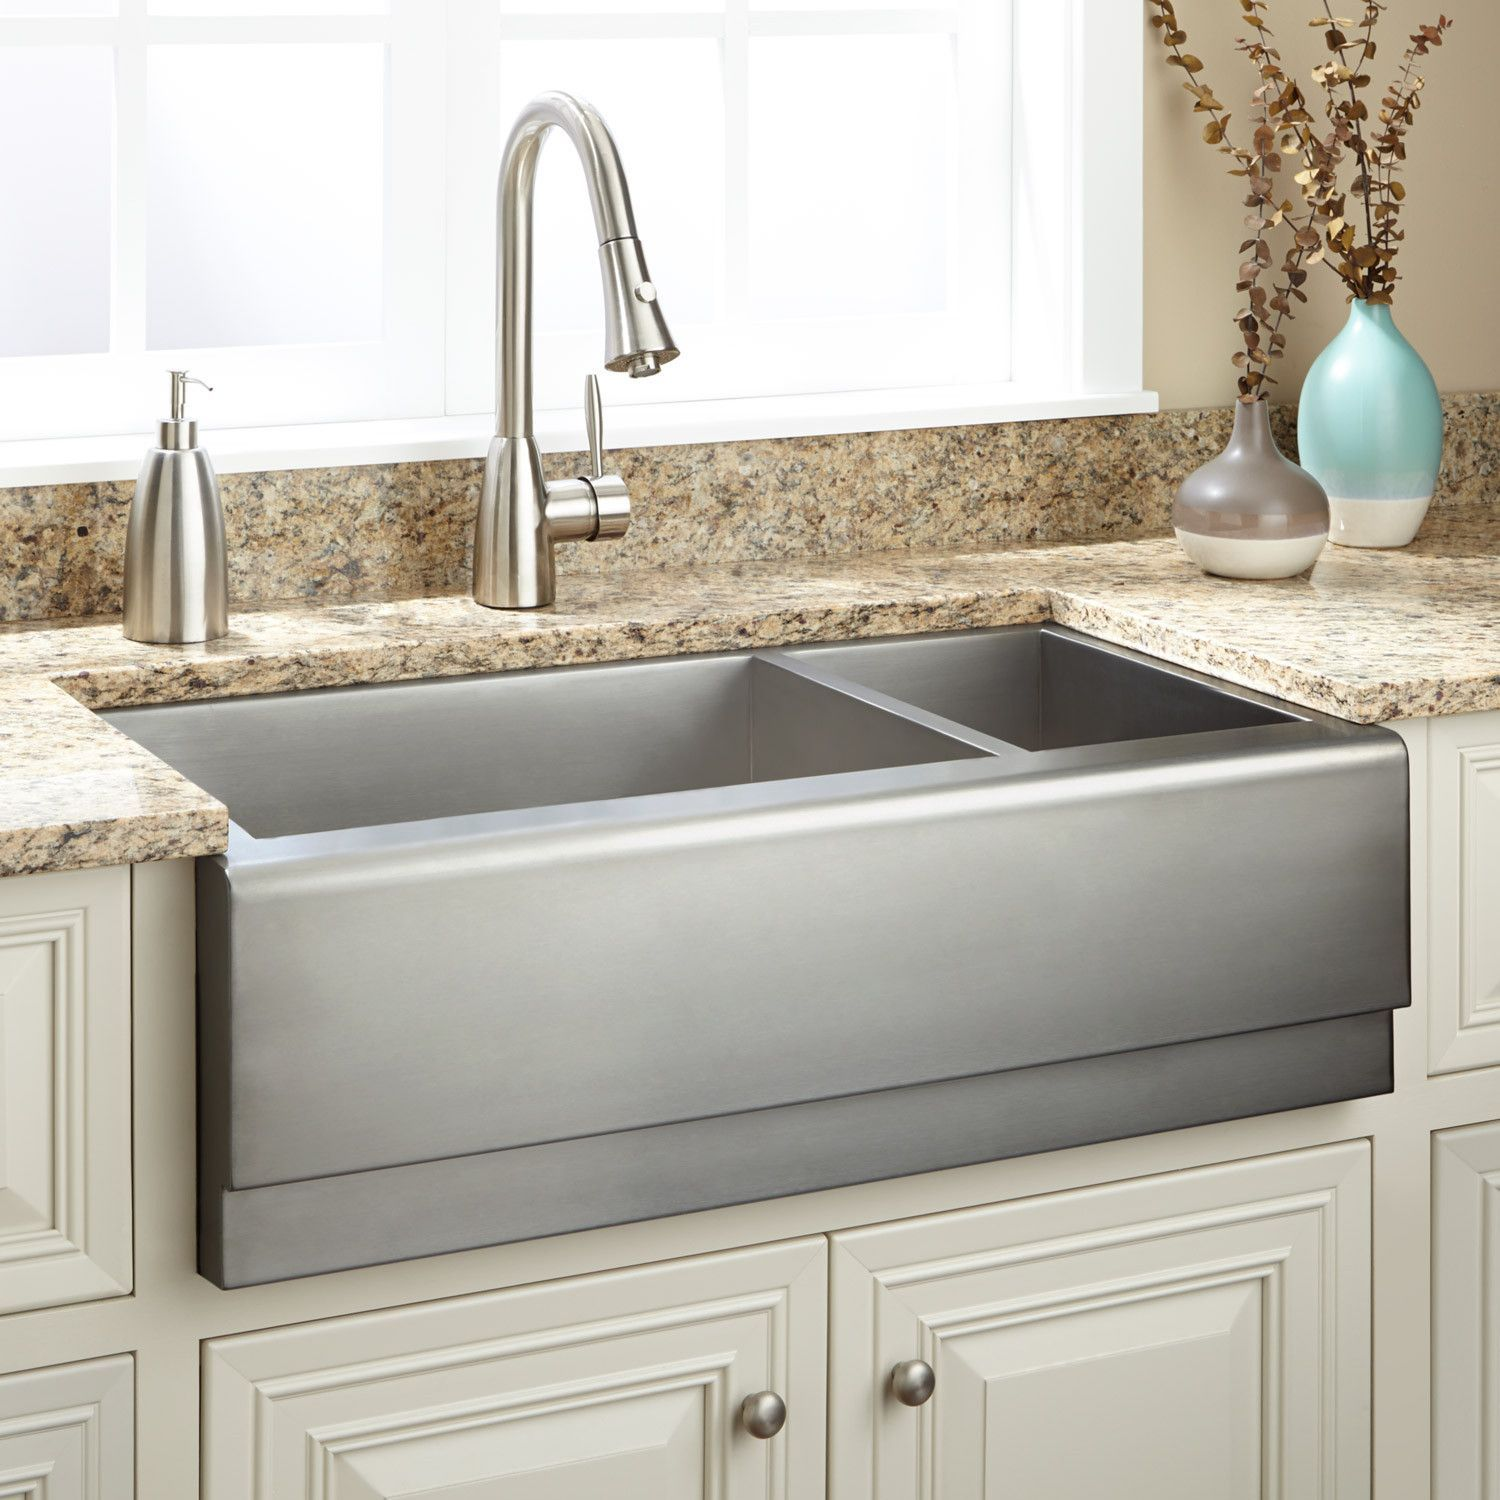 33 Archer 70 30 Offset Double Bowl Stainless Steel Farmhouse Sink